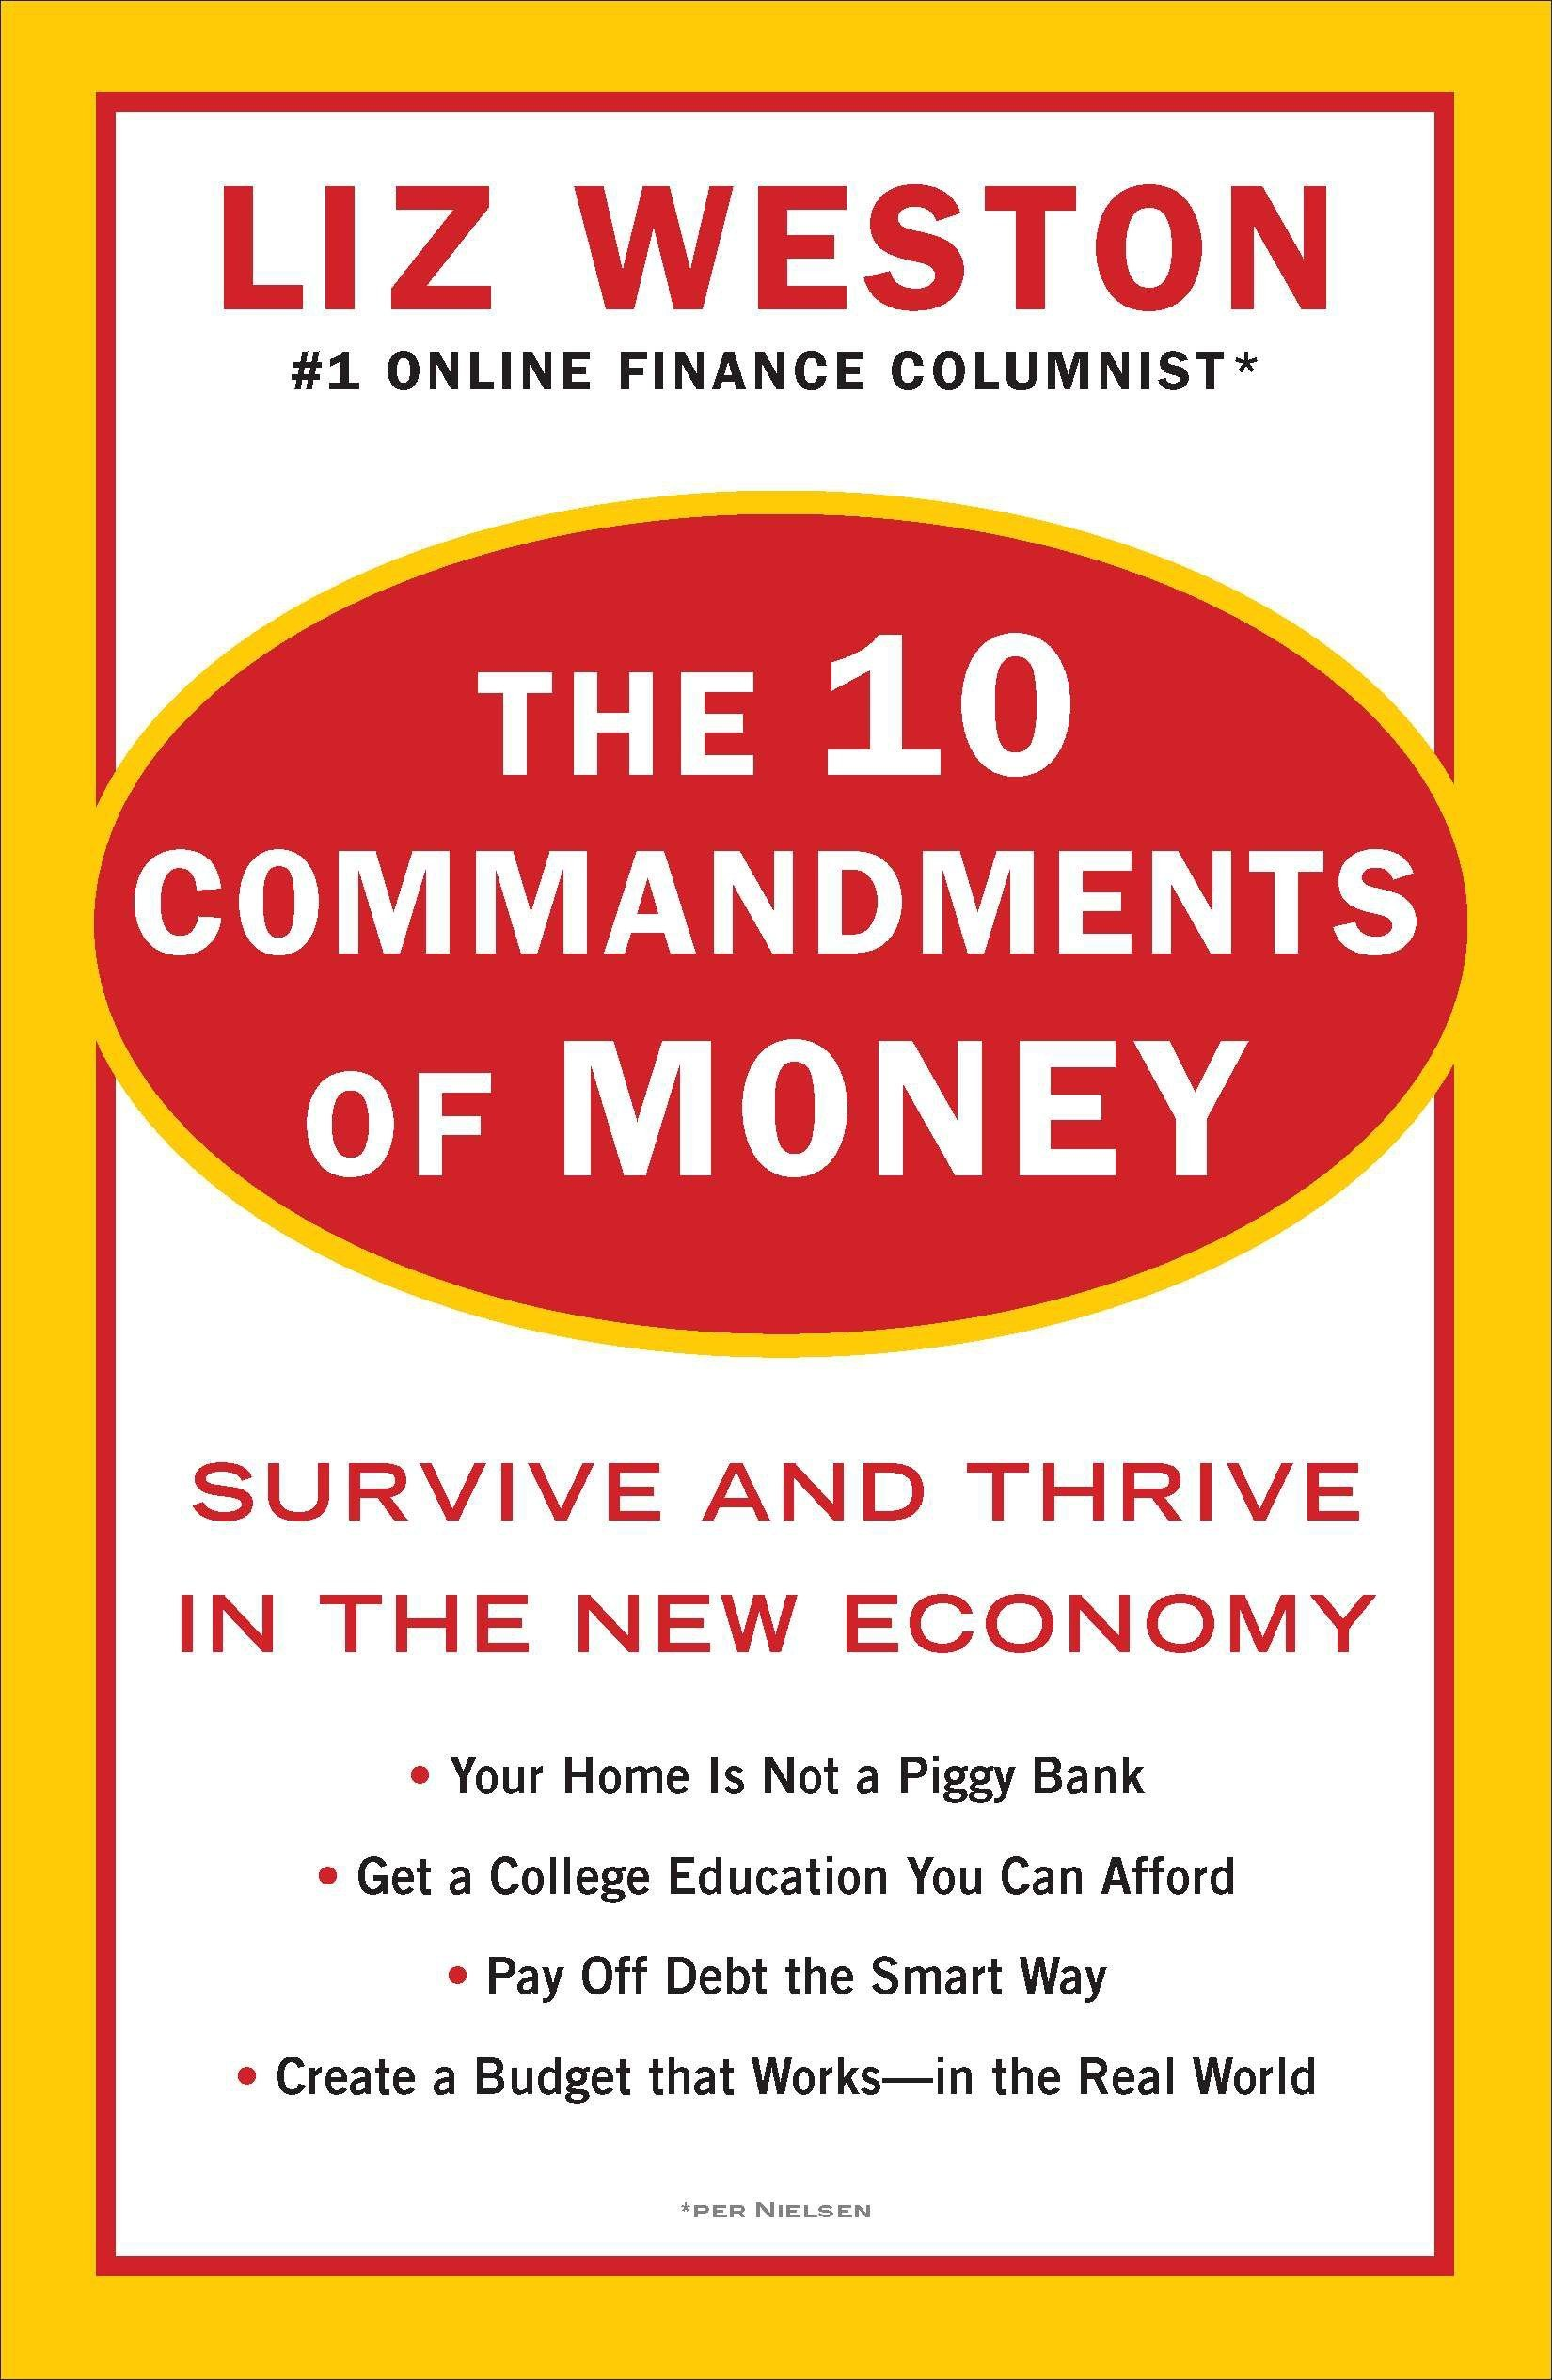 The 10 Commandments of Money: Survive and Thrive in the New Economy ebook